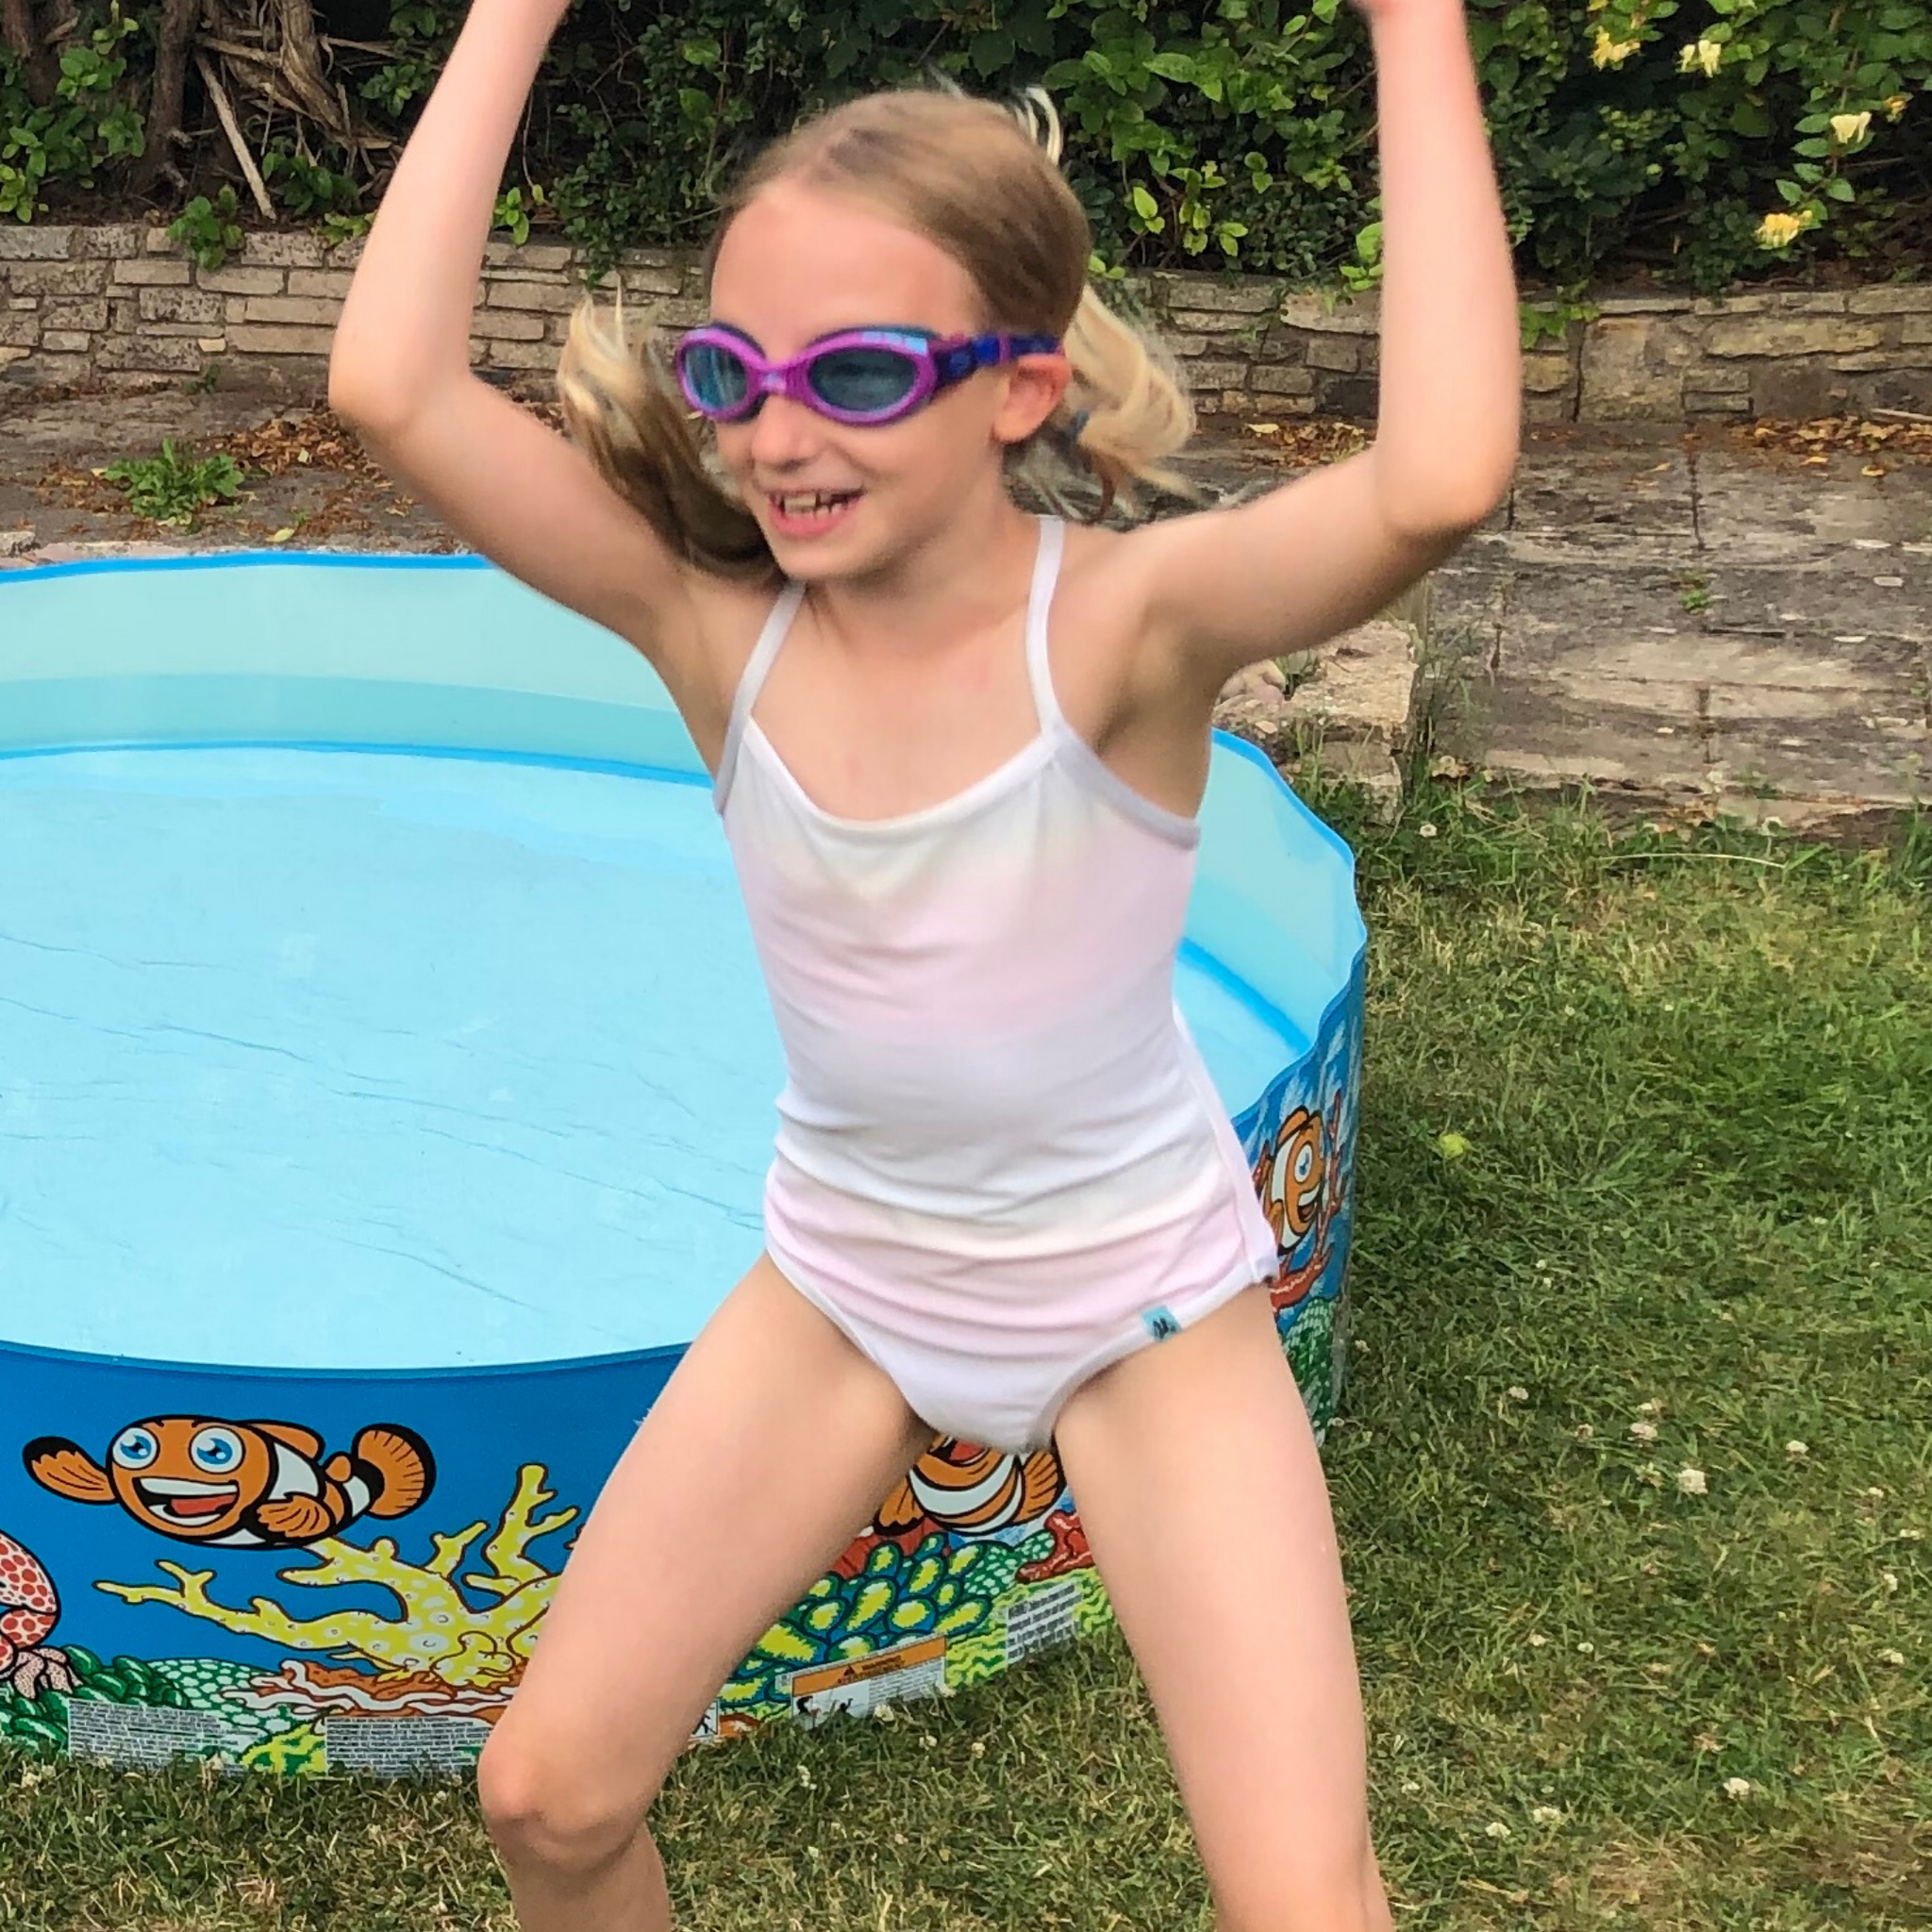 Girl playing around in the garden wearing goggles and a white swimming costume from Mermaid In England's Inner Glow collection. The swimsuit changes colour in water to a magical rainbow. Ethically handmade in Britain.